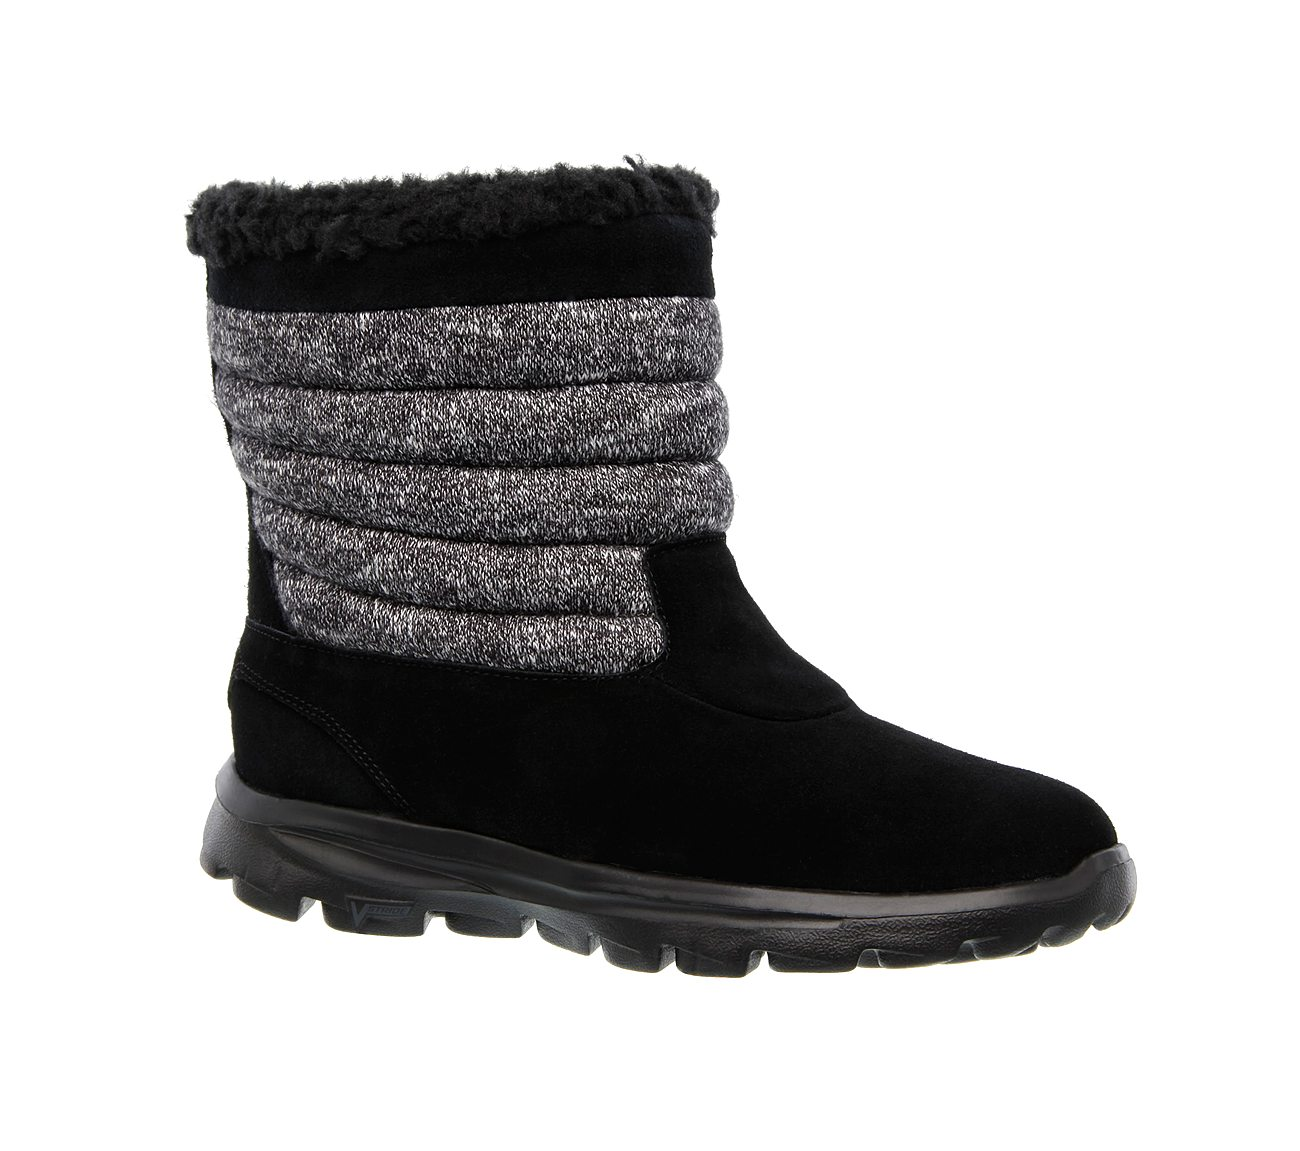 Skechers   GoWalk Move Afterglow Faux Fur Lined Mid Boot   Nordstrom Rack